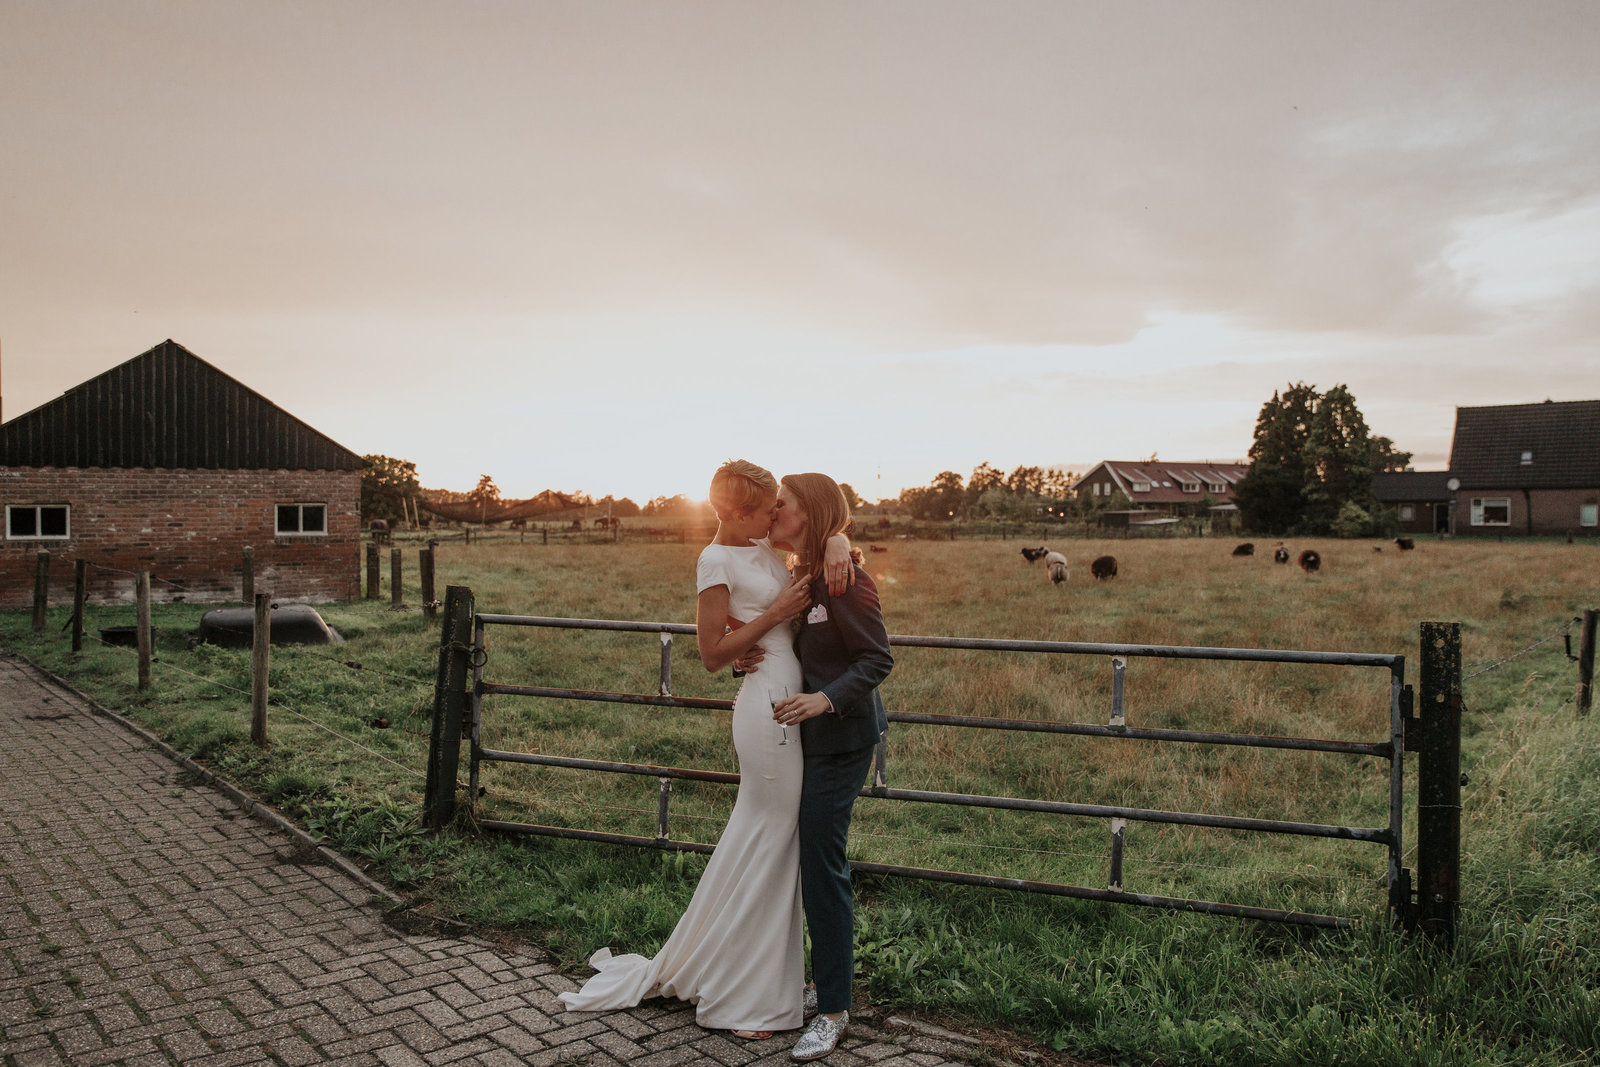 PREVIEW Lisanne & Laura 17-08-2019 | Samantha Bosdijk Photography-46